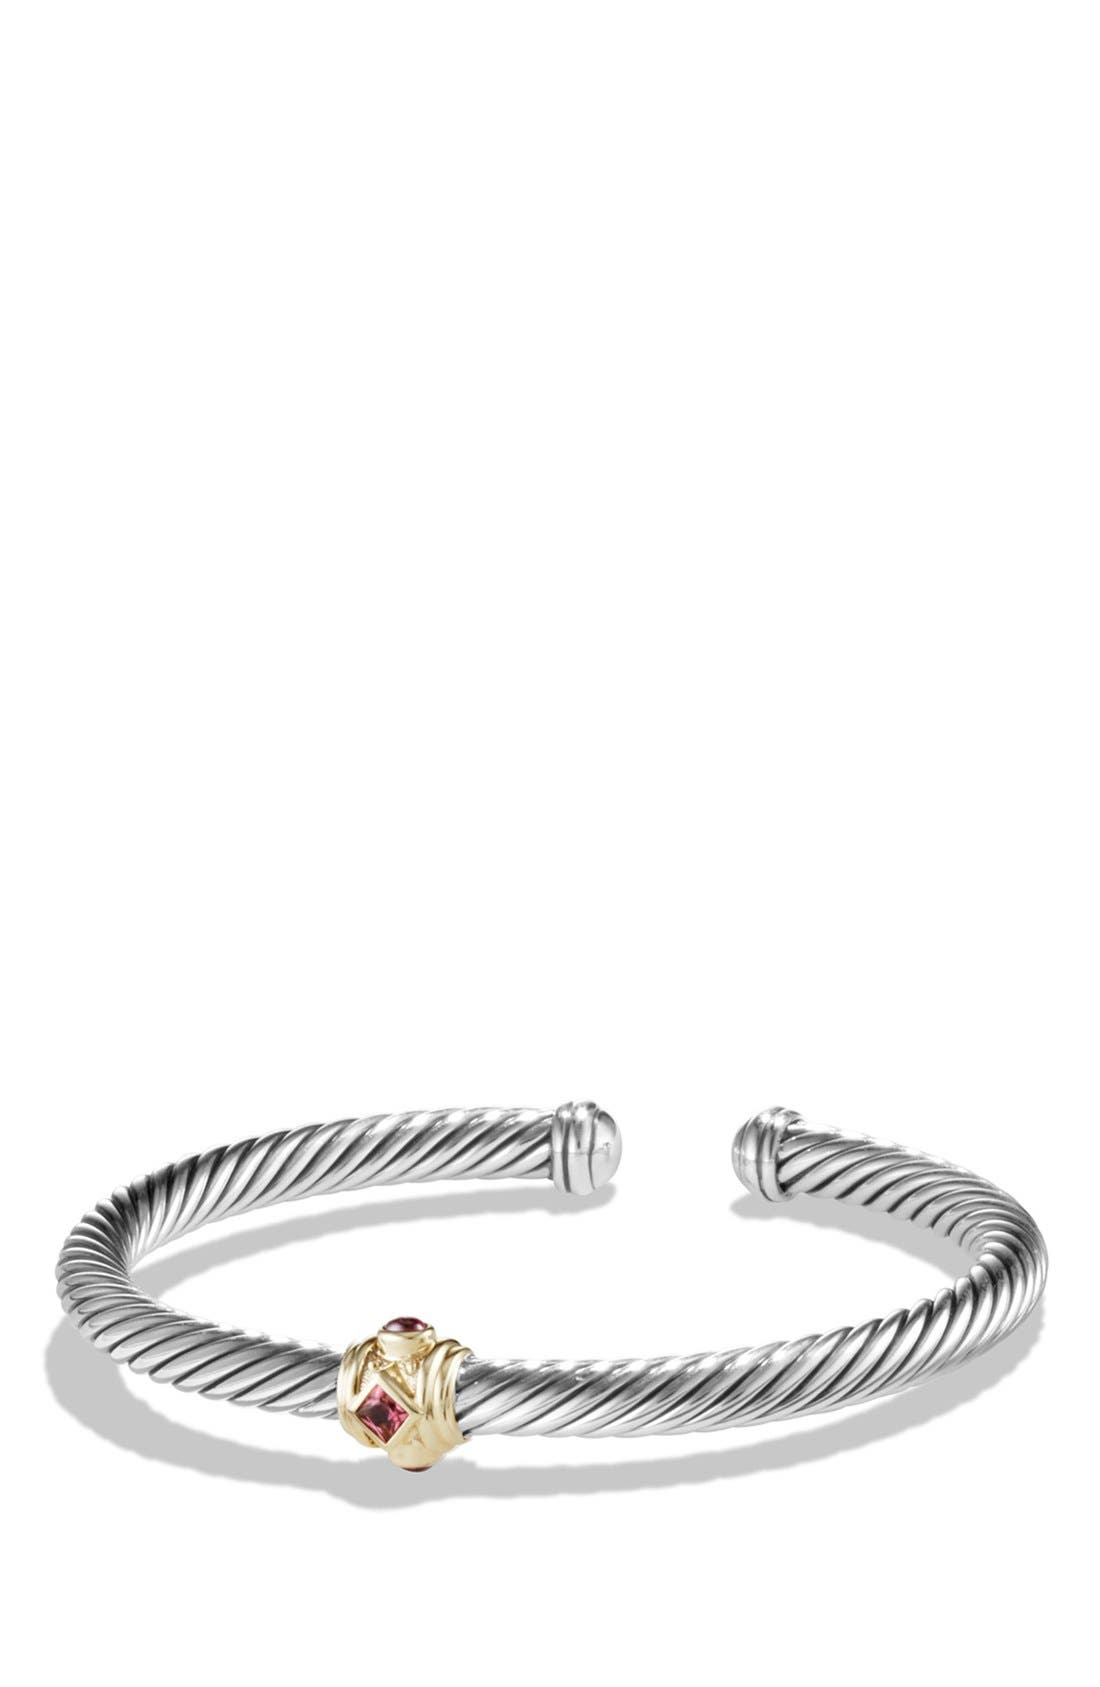 David Yurman 'Renaissance' Bracelet with Semiprecious Stone and 14K Gold